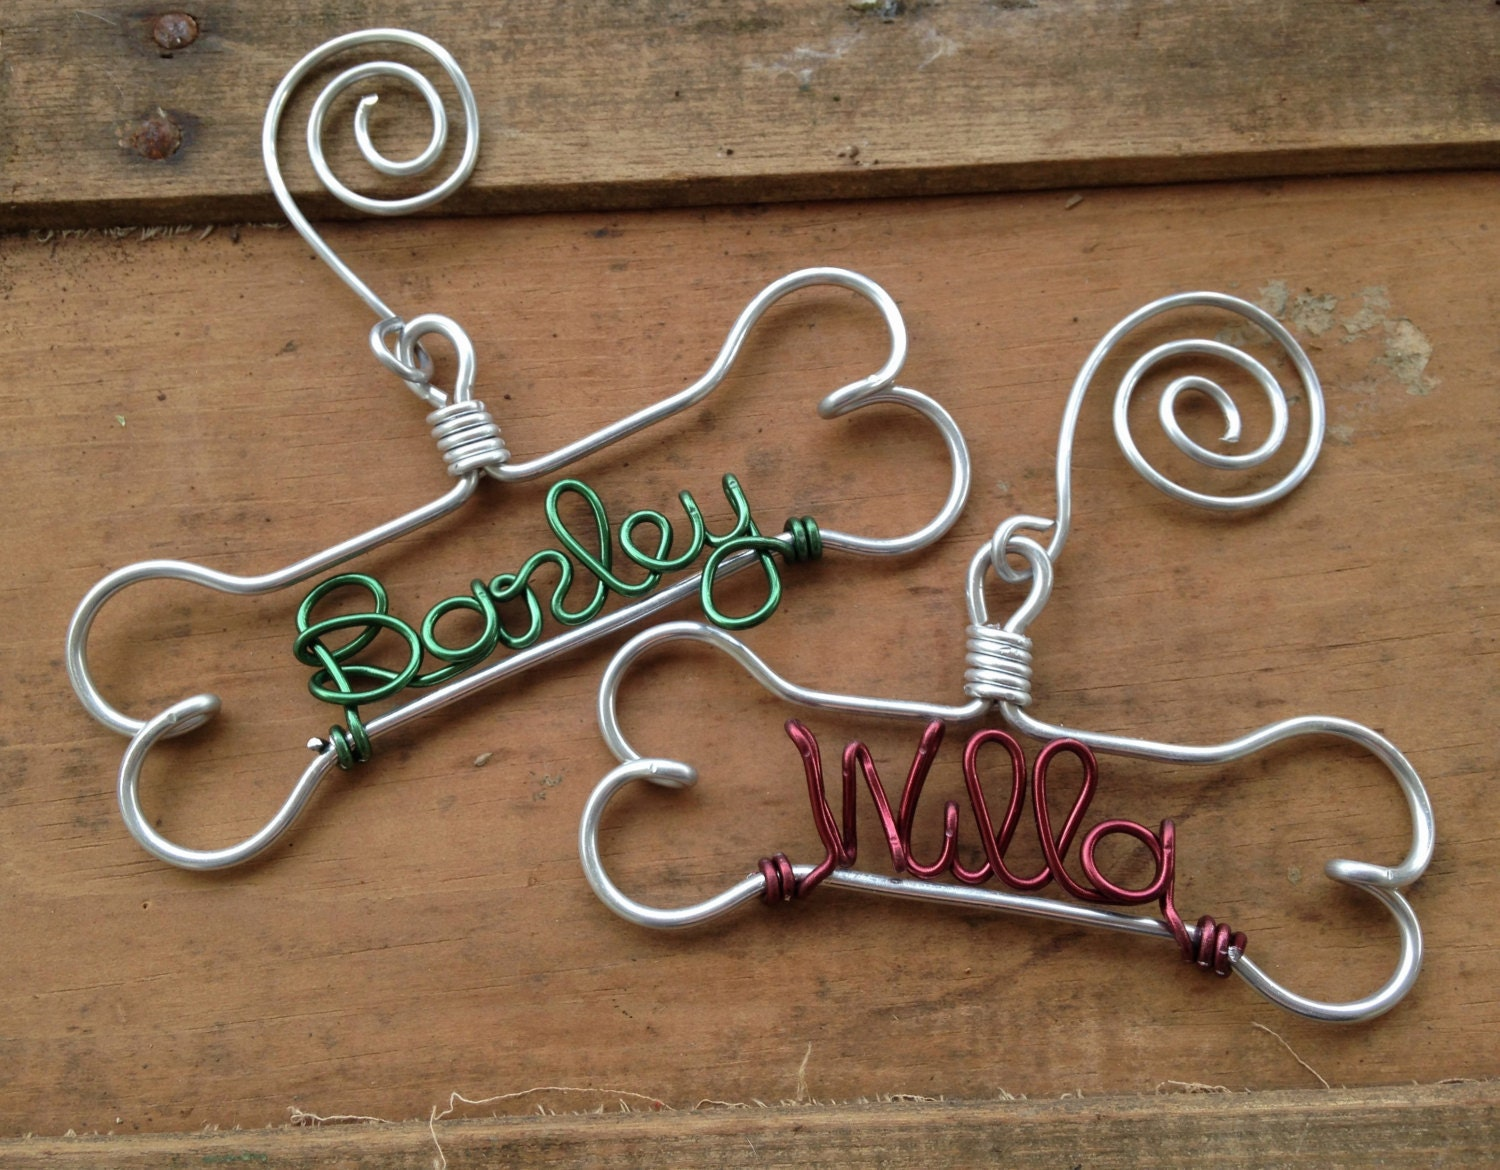 Wire Cat Ornaments Center Caig Cw100p Circuit Writer Conductive Ink Pen Personalized Dog Ornament Lover Gifts For Pets Rh Etsy Com Christmas Decorations